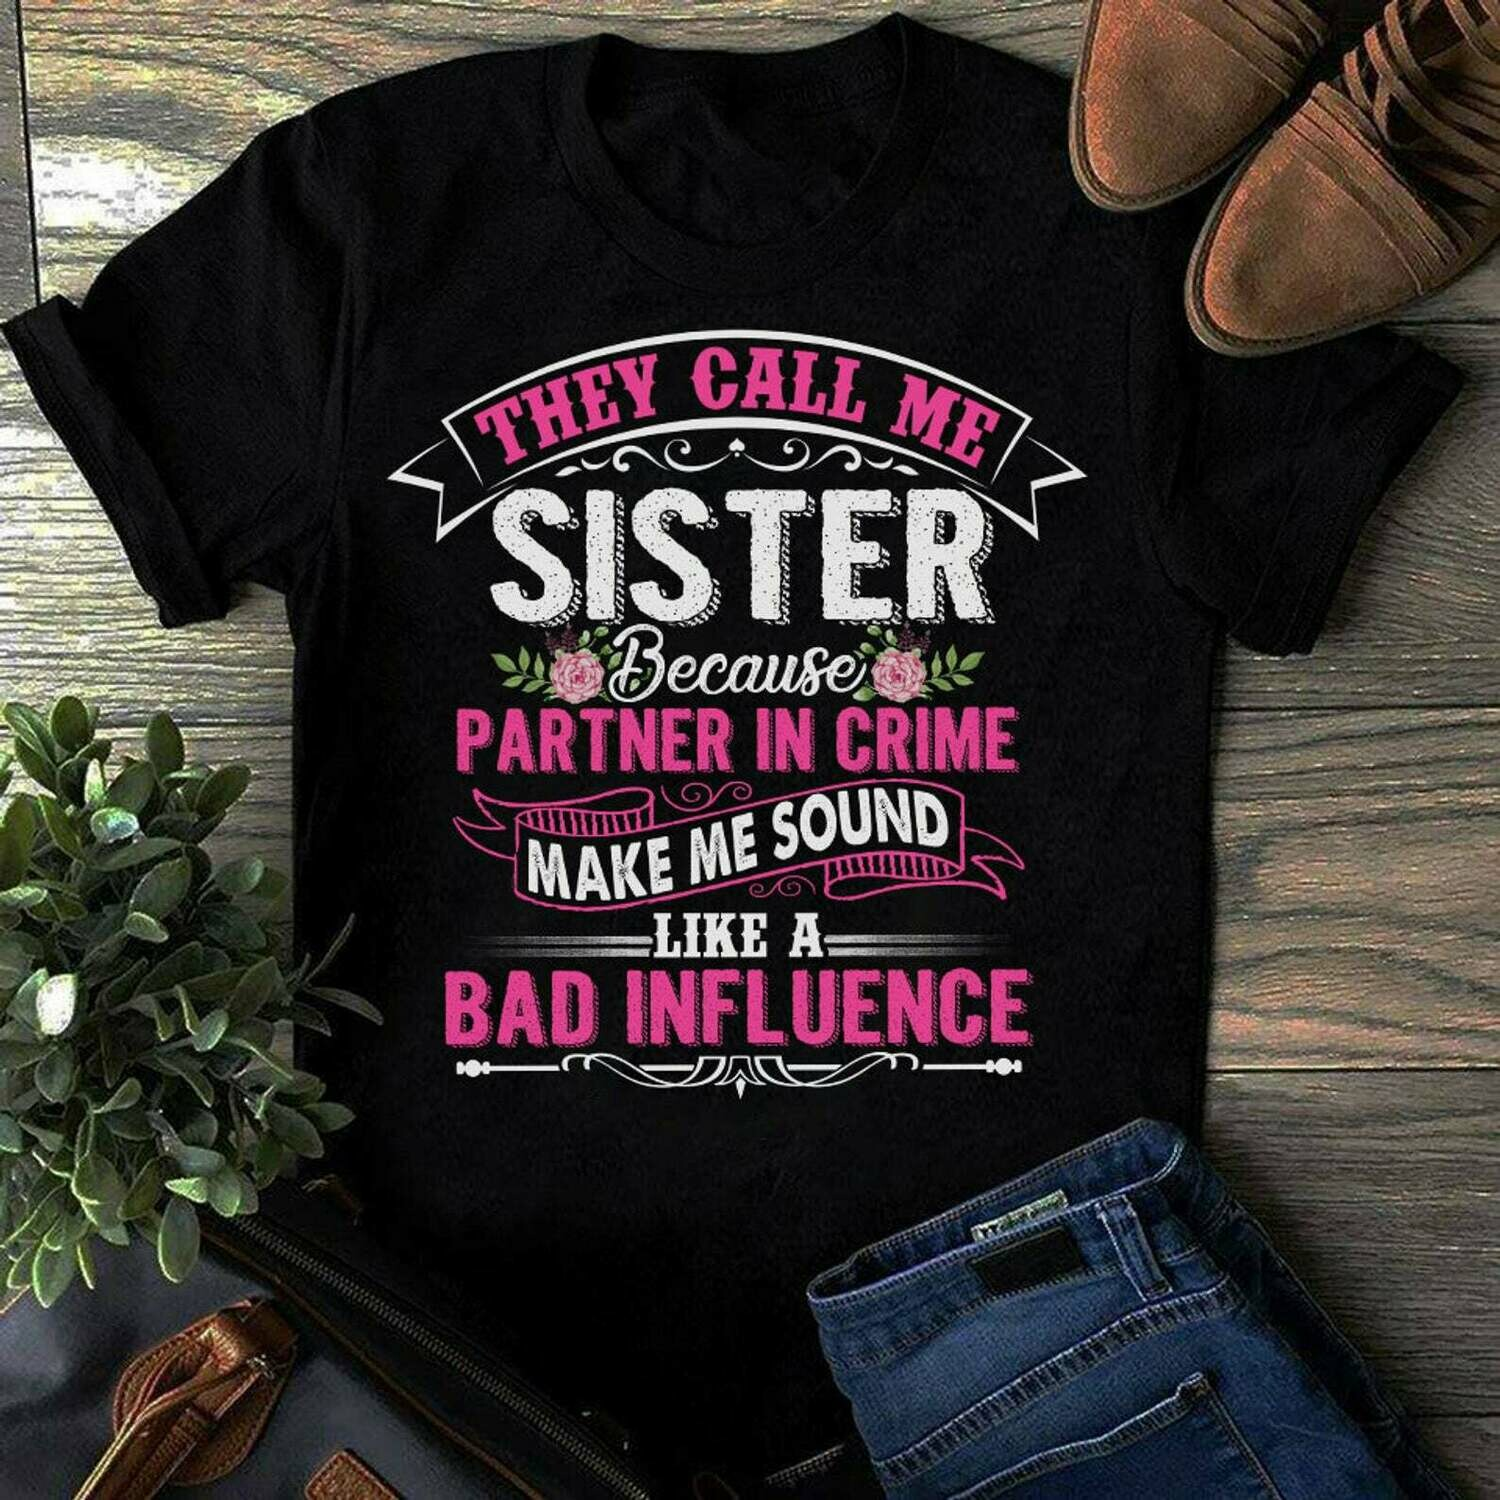 They call me sister because partner in crime T-shirt, sister shirts, gifts for sister, women's day gifts, sister gifts, funny sister t-shirt